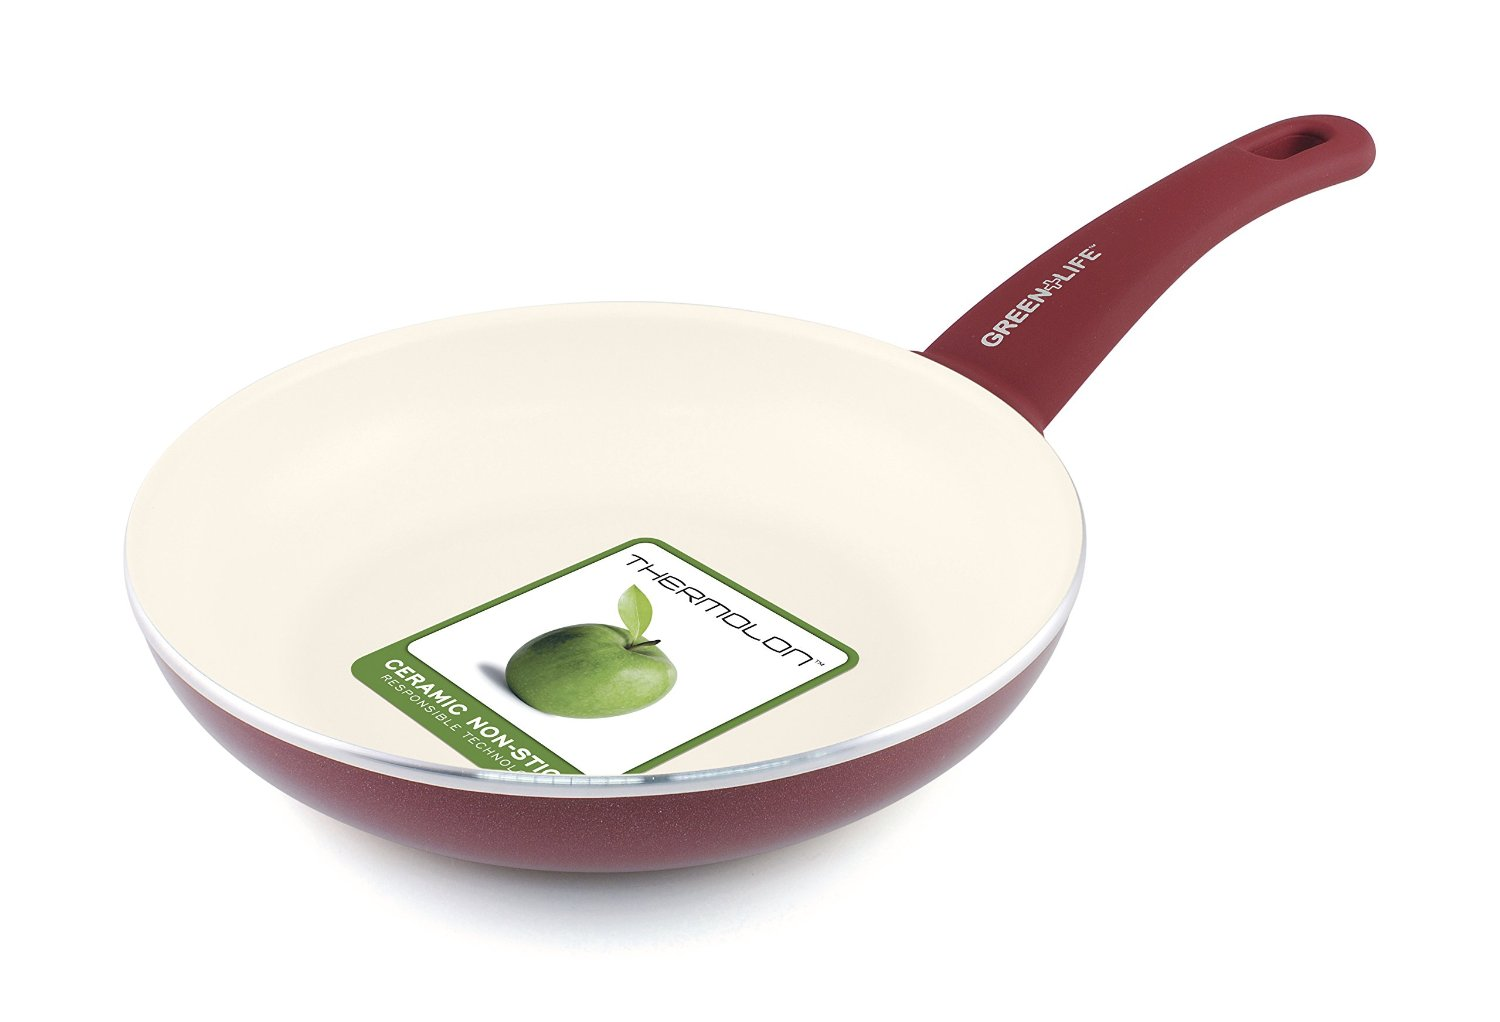 GreenLife 8 Inch Ceramic Non-Stick Frypan with Soft Grip Red